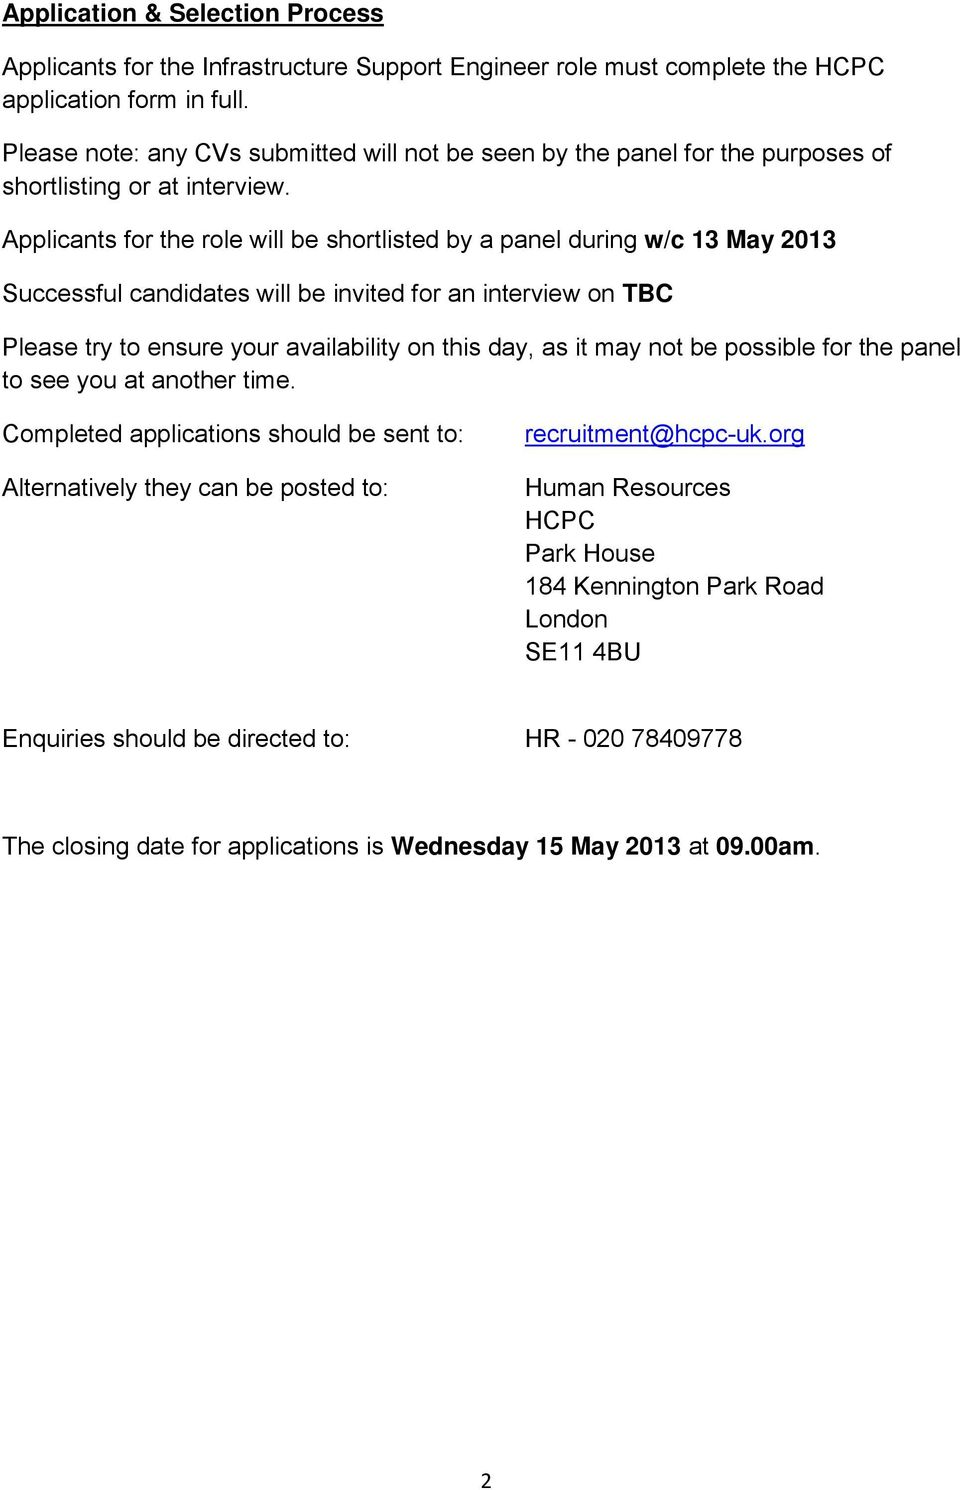 Applicants for the role will be shortlisted by a panel during w/c 13 May 2013 Successful candidates will be invited for an interview on TBC Please try to ensure your availability on this day, as it